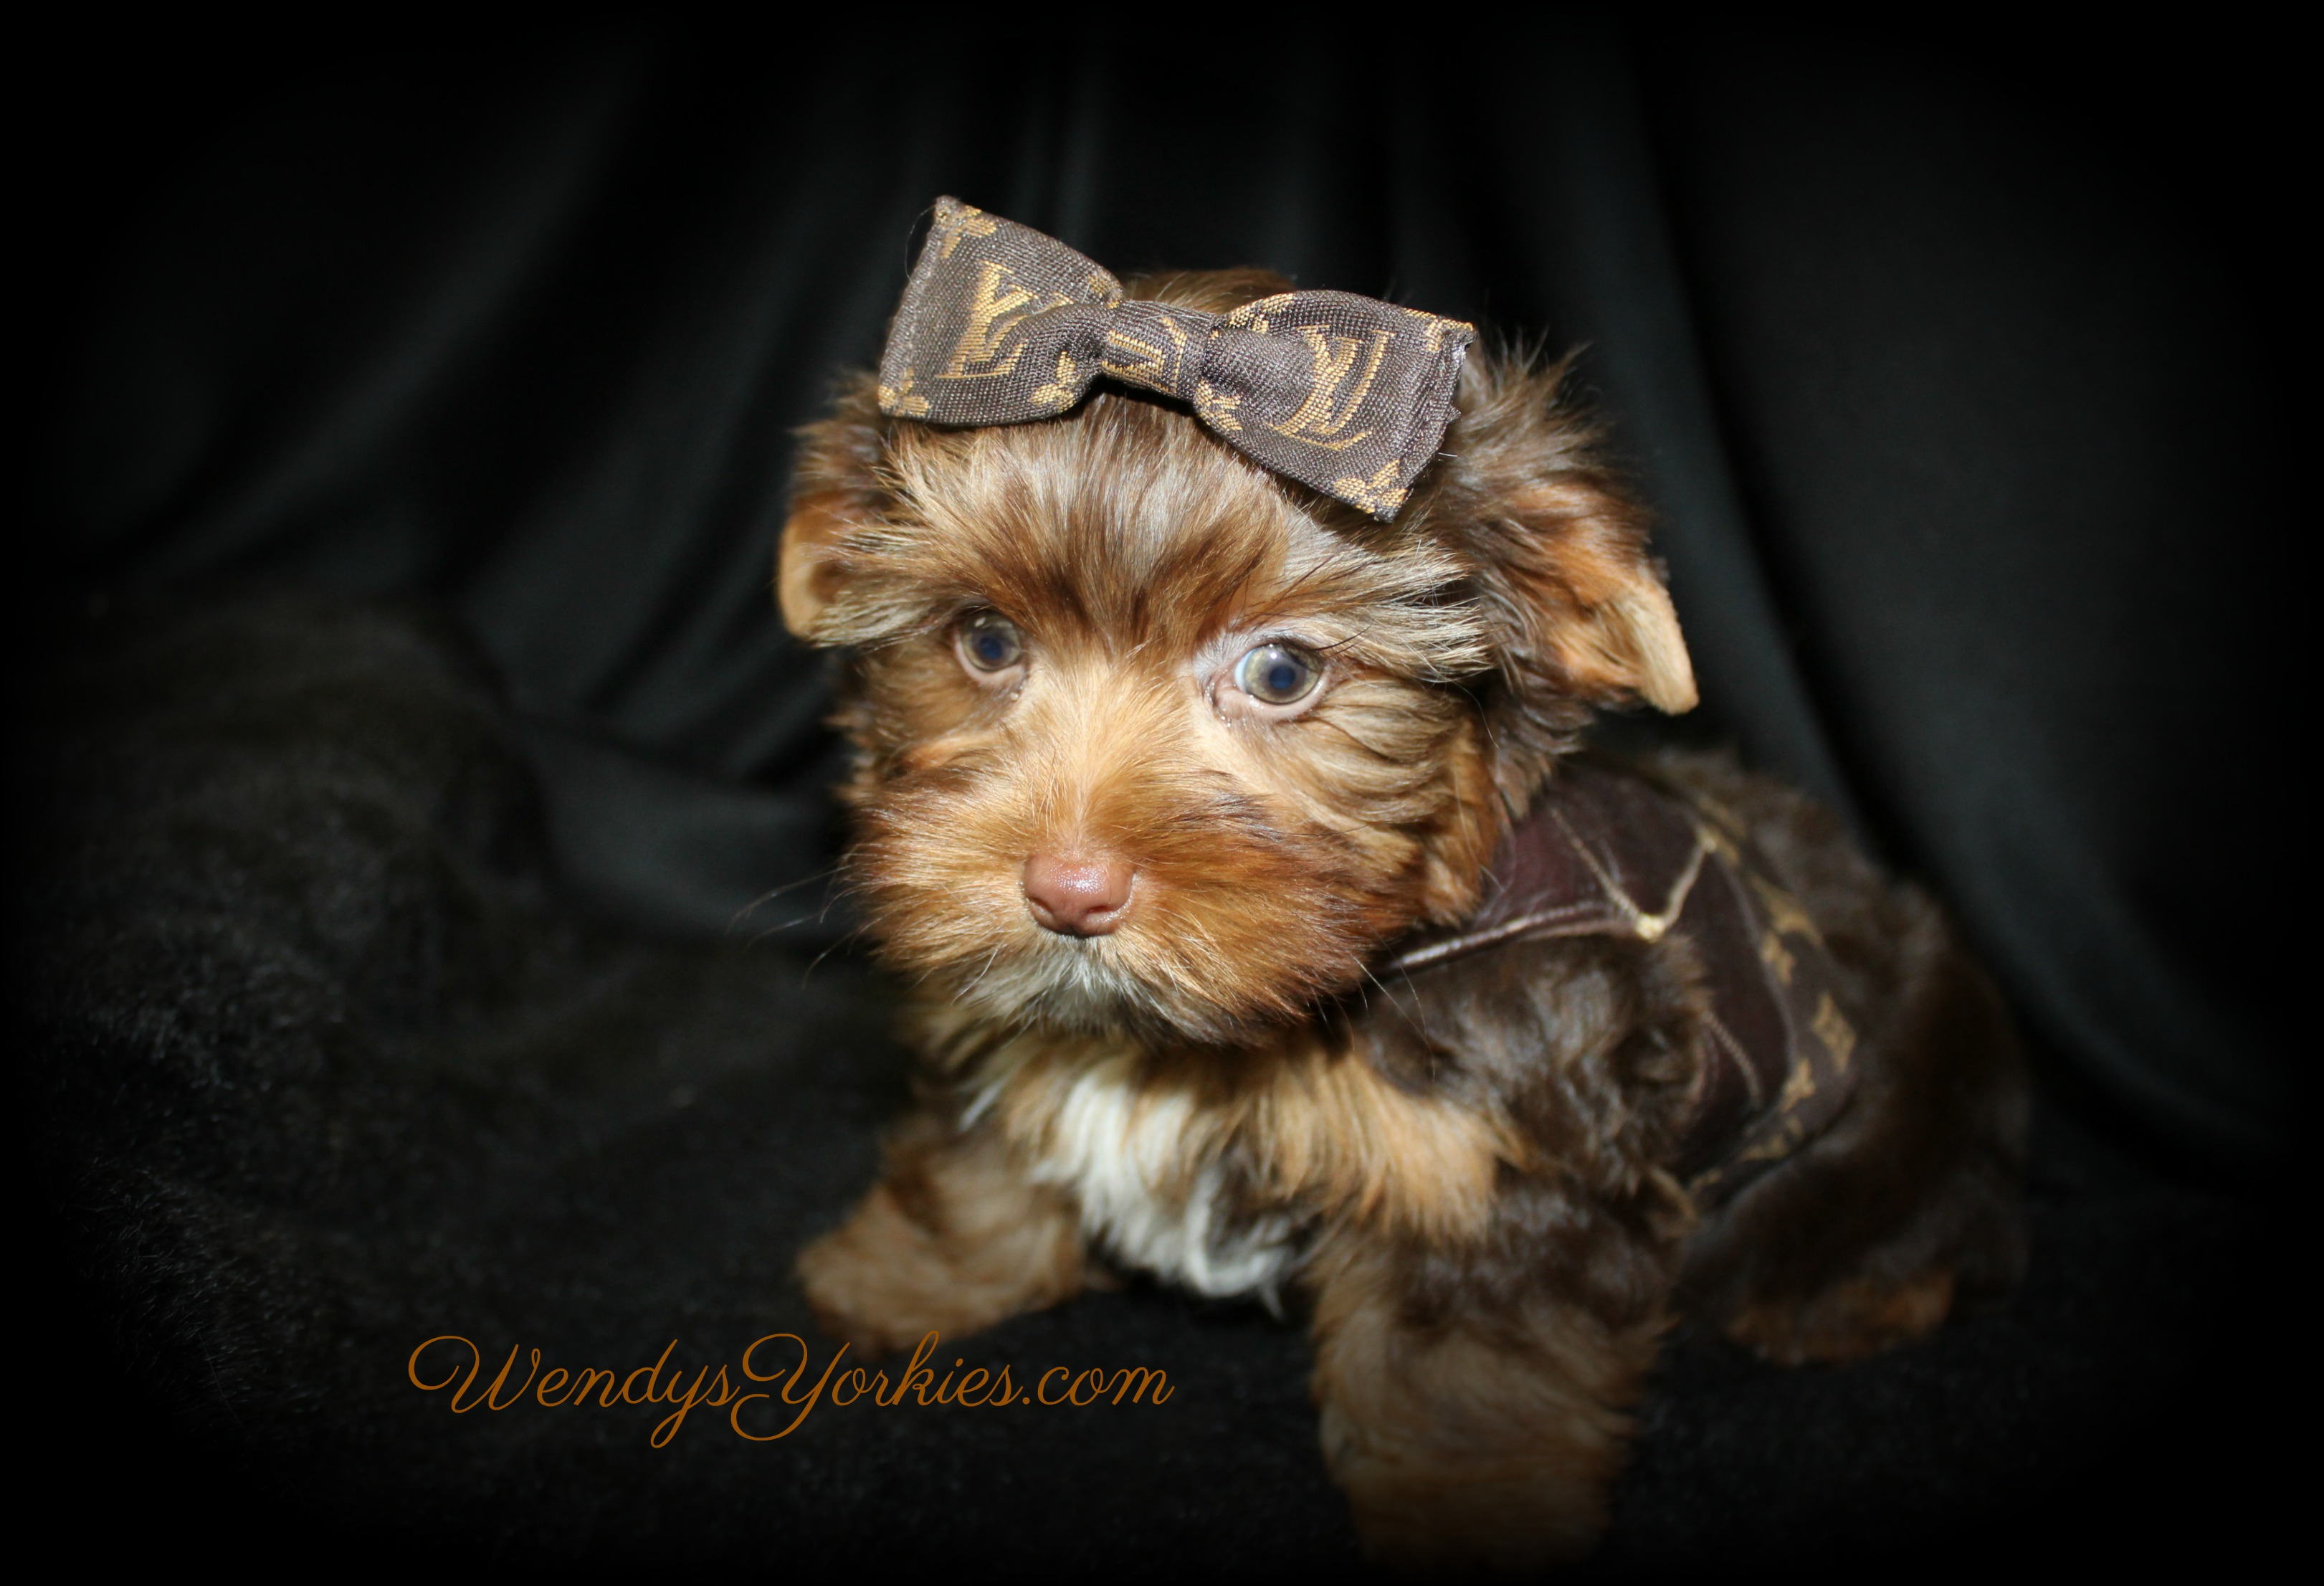 Cute Chocolate Yorkie puppy for sale, Dixie cm1,WendysYorkies.com